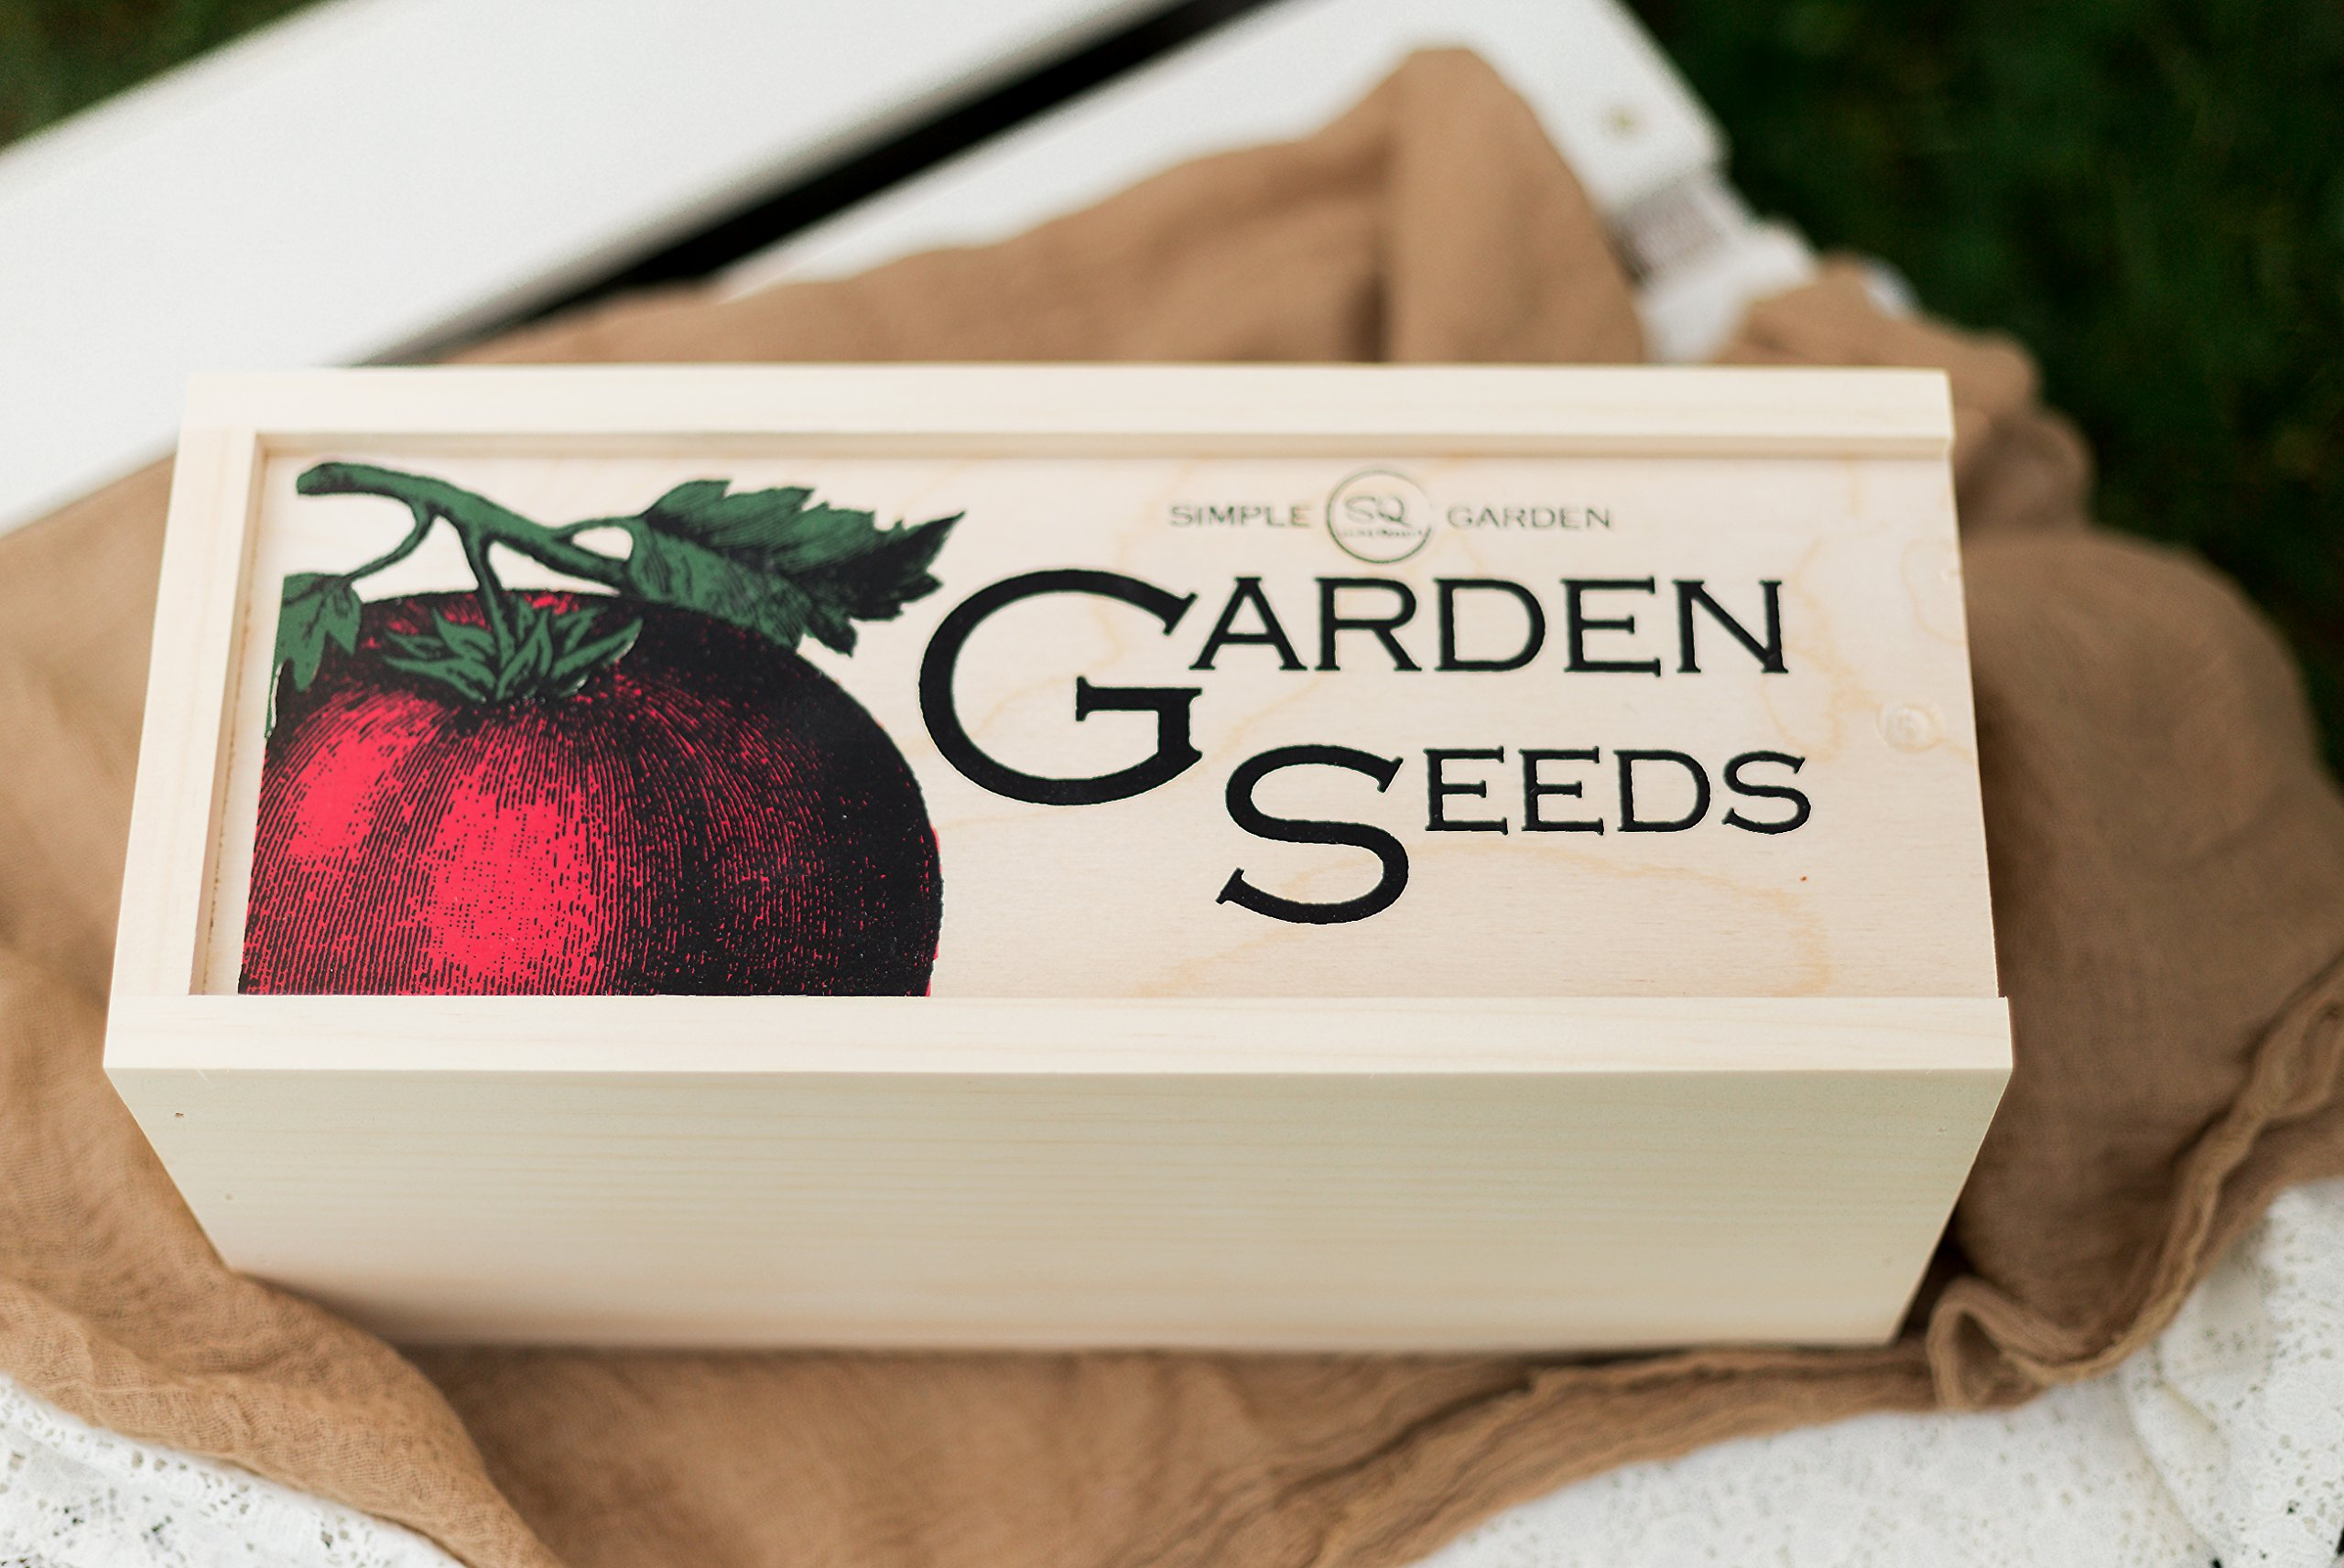 Seed Storage and Organizer Box for Your Garden Seed Packets - New - Tall Size -11.75 L 5.1 Wide 6.5 H - Expertly Crafted in The U.S.A. with Vintage Style Divider Cards to Organize Seeds by Simple Quality (Image #5)